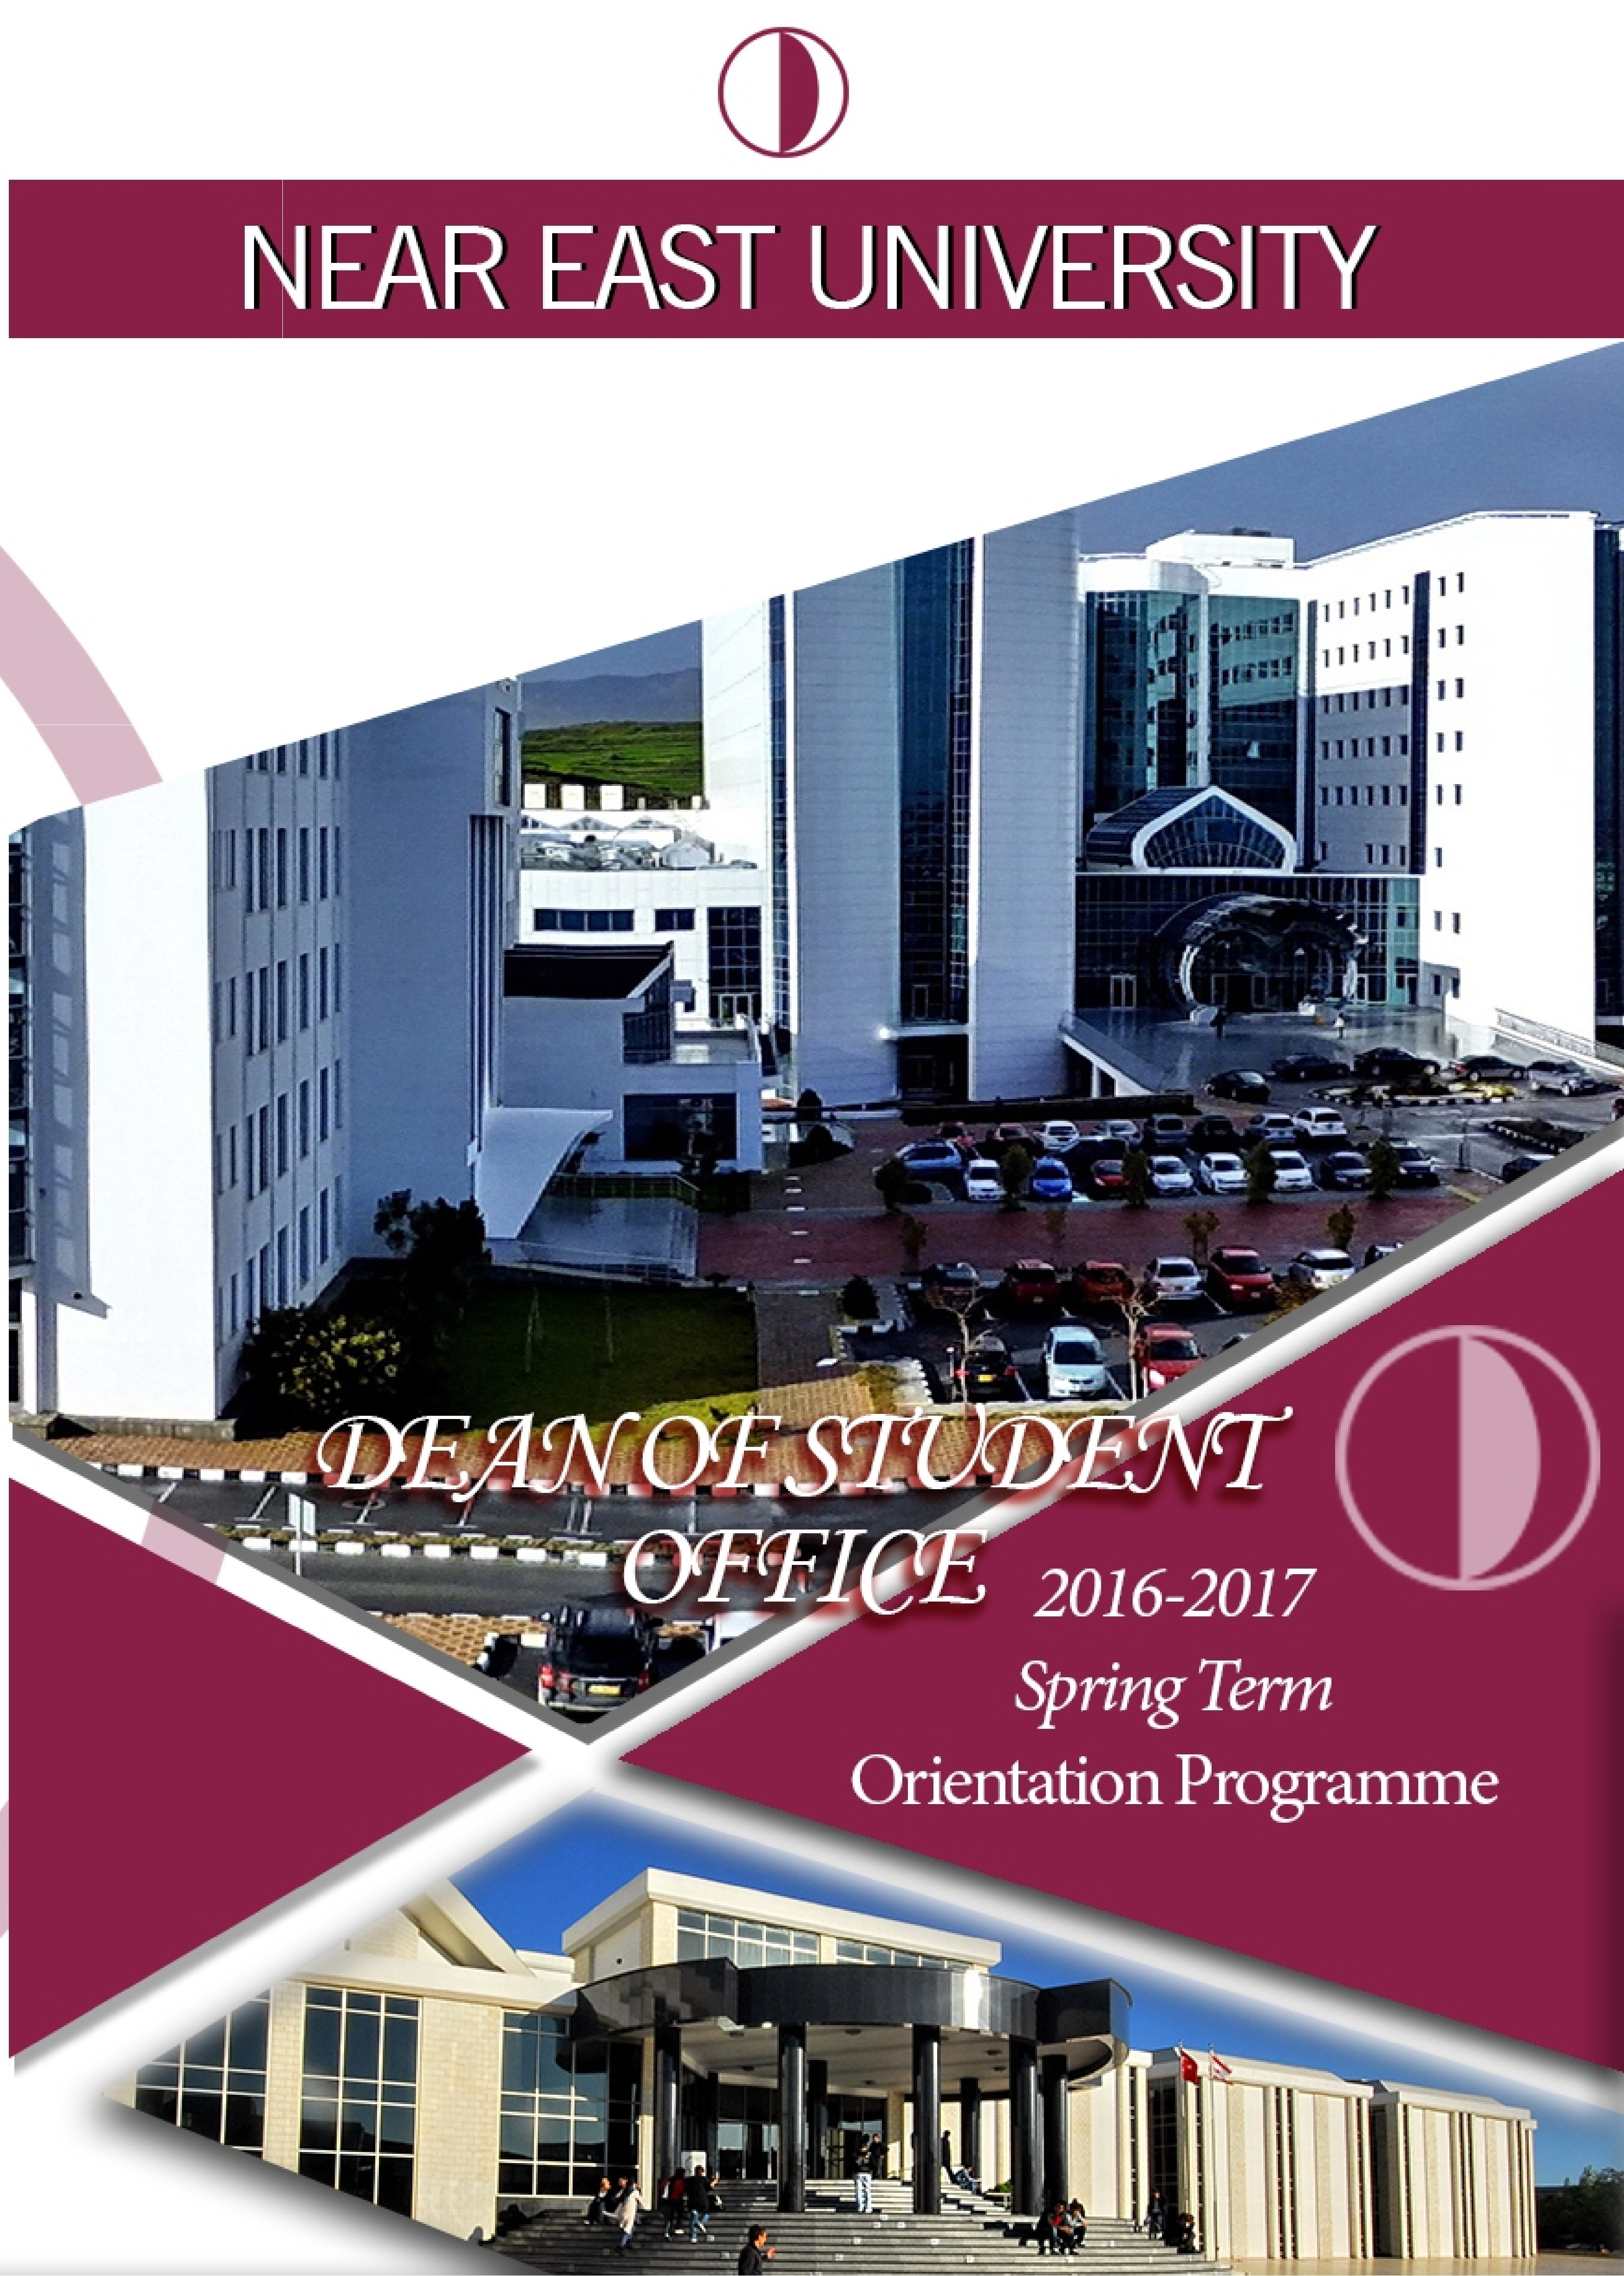 2016-2017 Spring Term Orientation Program offers new students the opportunity to learn about Near East University and Northern Cyprus